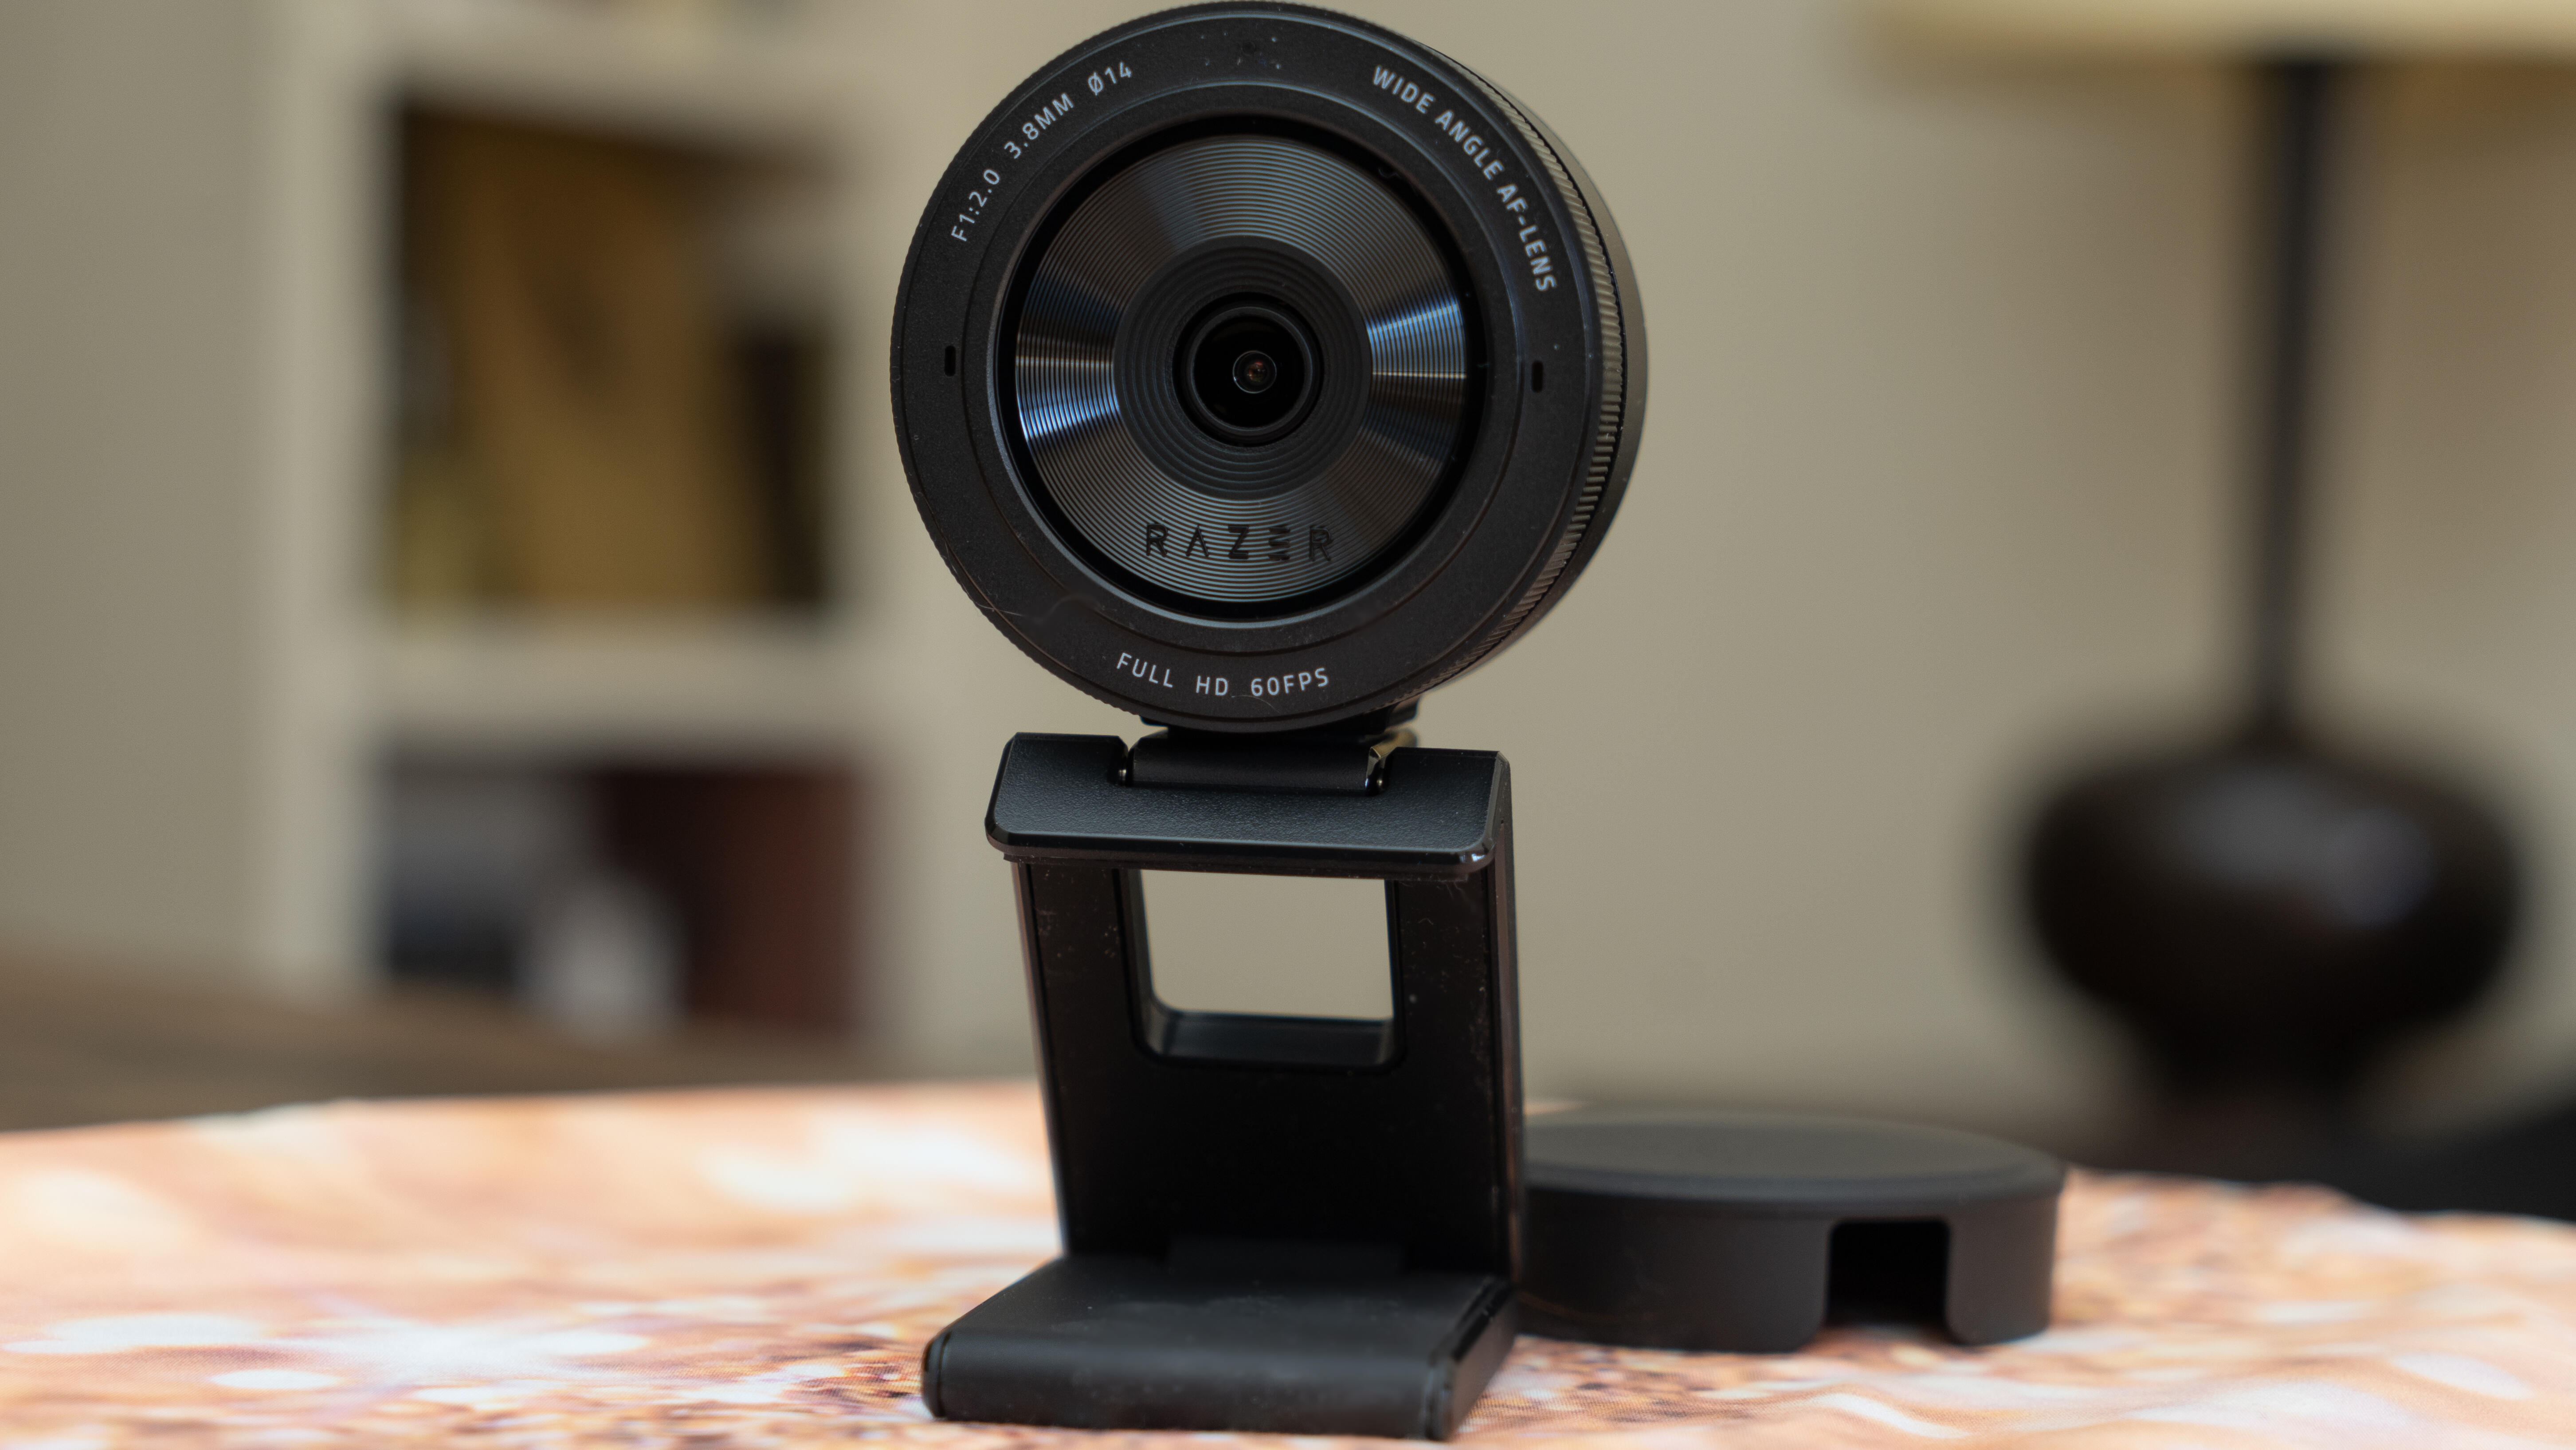 Razer Kiyo Pro webcam improves its image for game streamers and home  workers - CNET